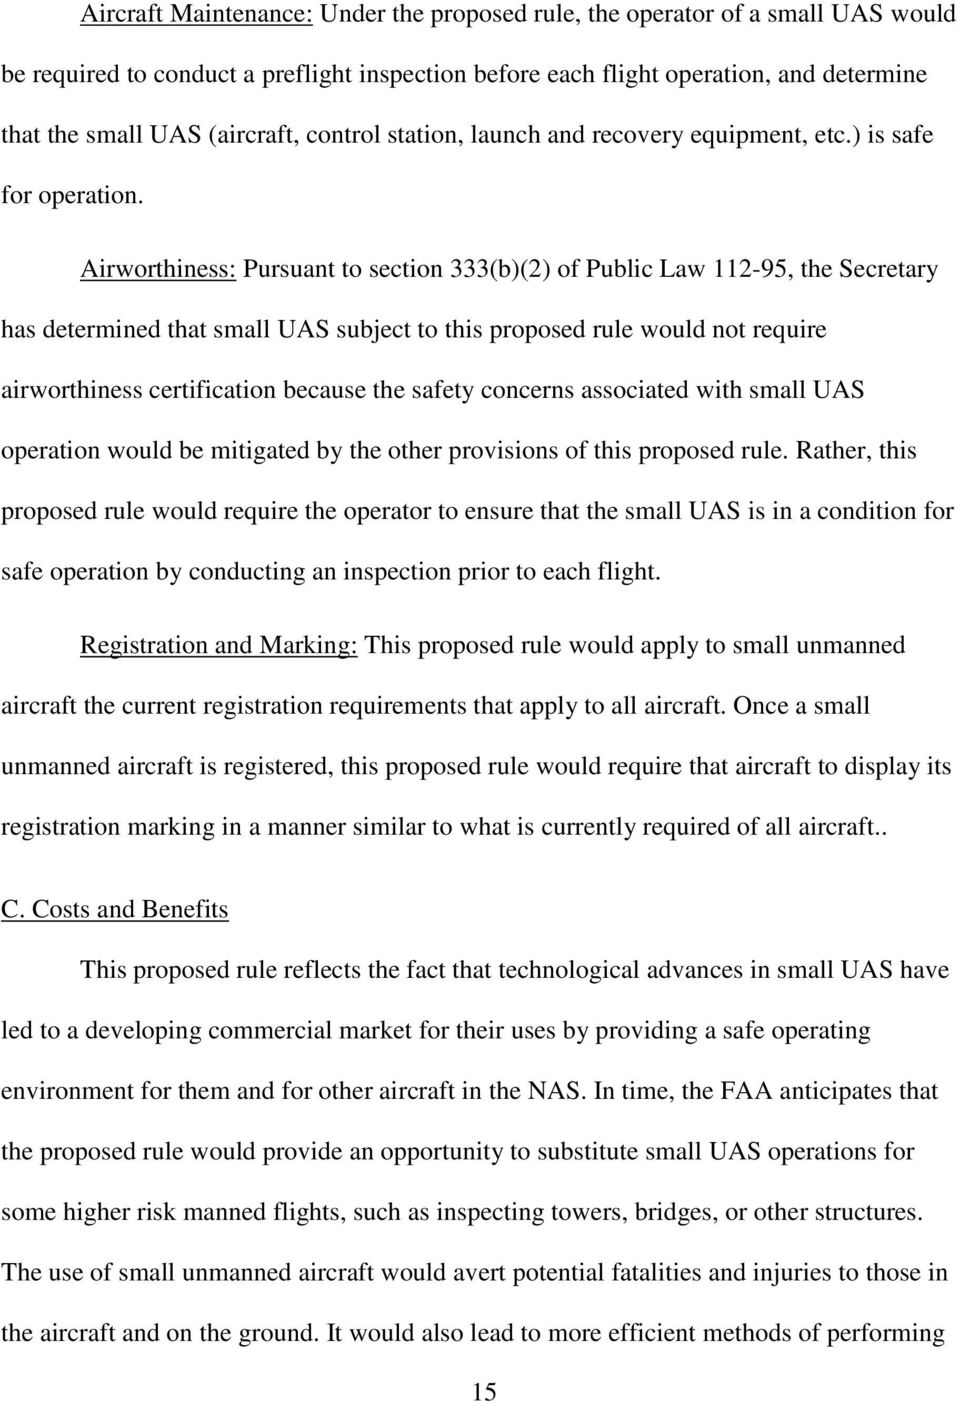 Airworthiness: Pursuant to section 333(b)(2) of Public Law 112-95, the Secretary has determined that small UAS subject to this proposed rule would not require airworthiness certification because the